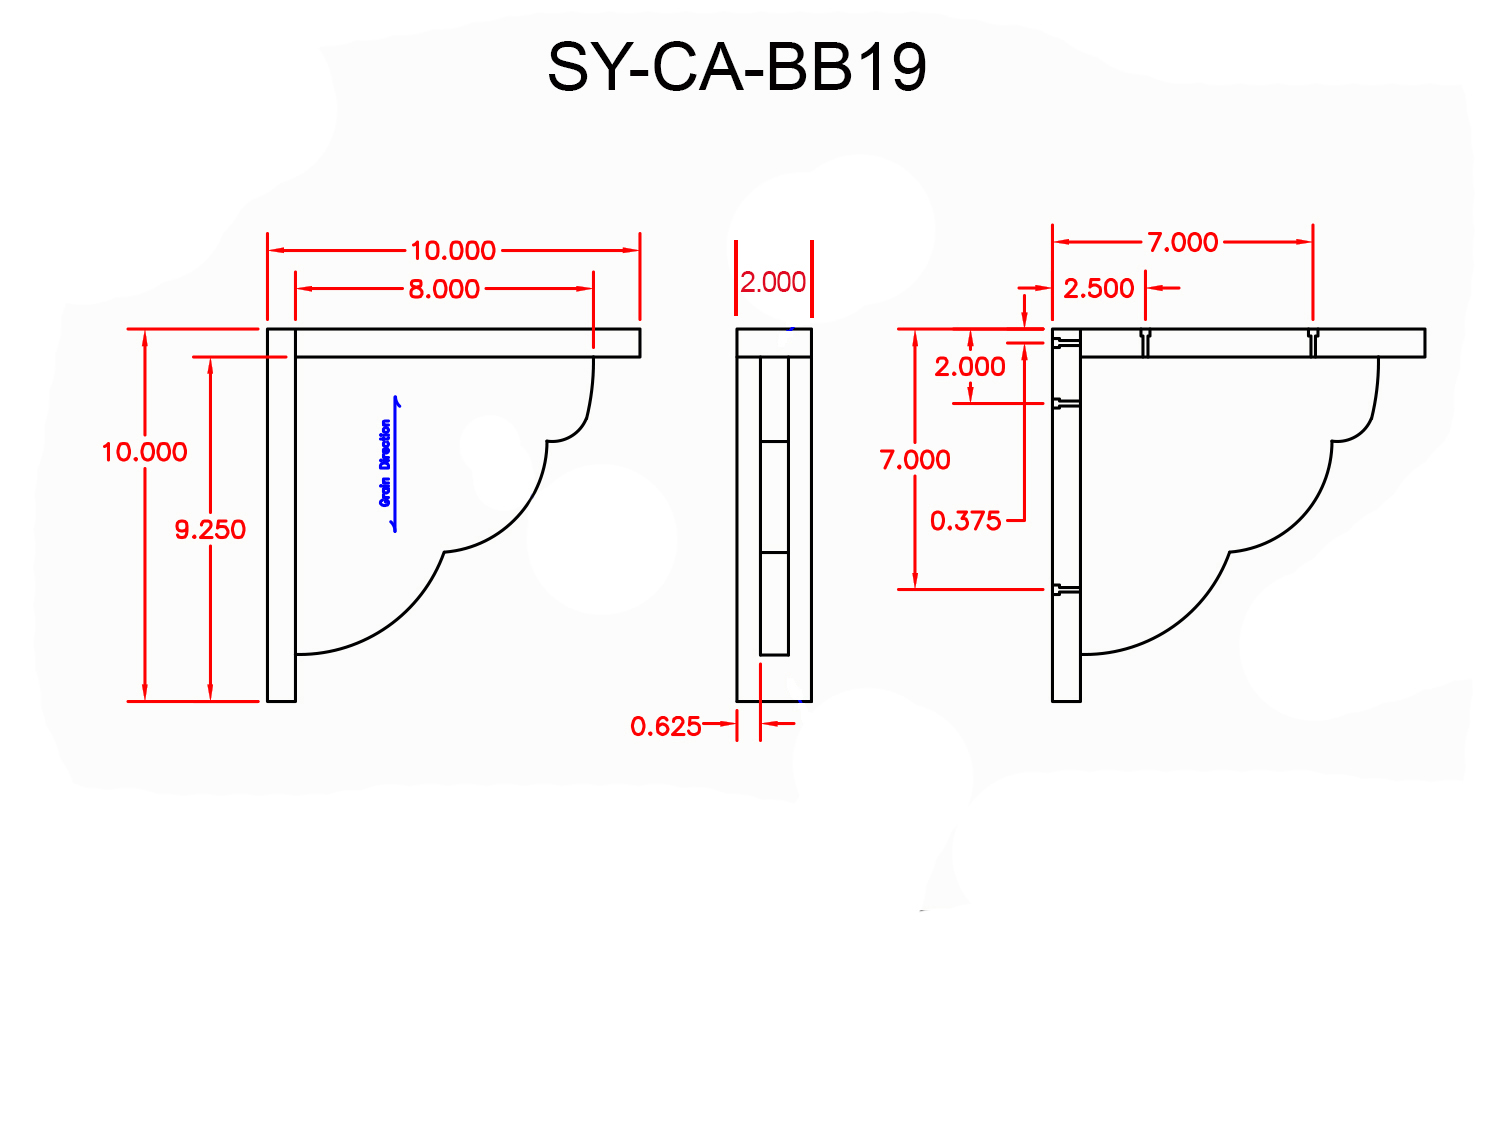 SY-CA-BB19 Line Drawing